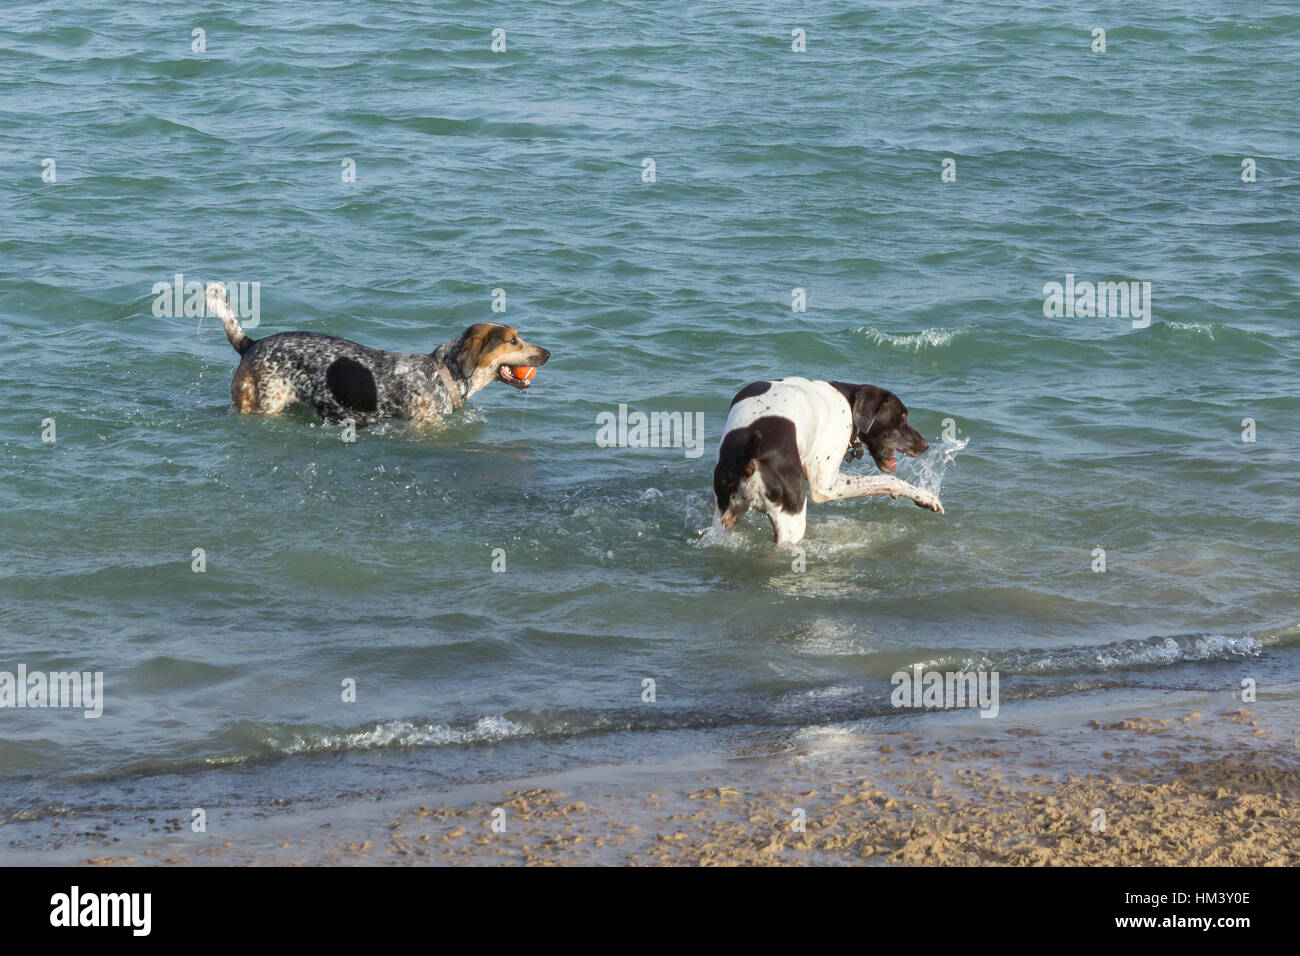 Ball toting bluetick hound walker coonhound mutt watching a confused pointer dalmation mix slap and bite the water - Stock Image